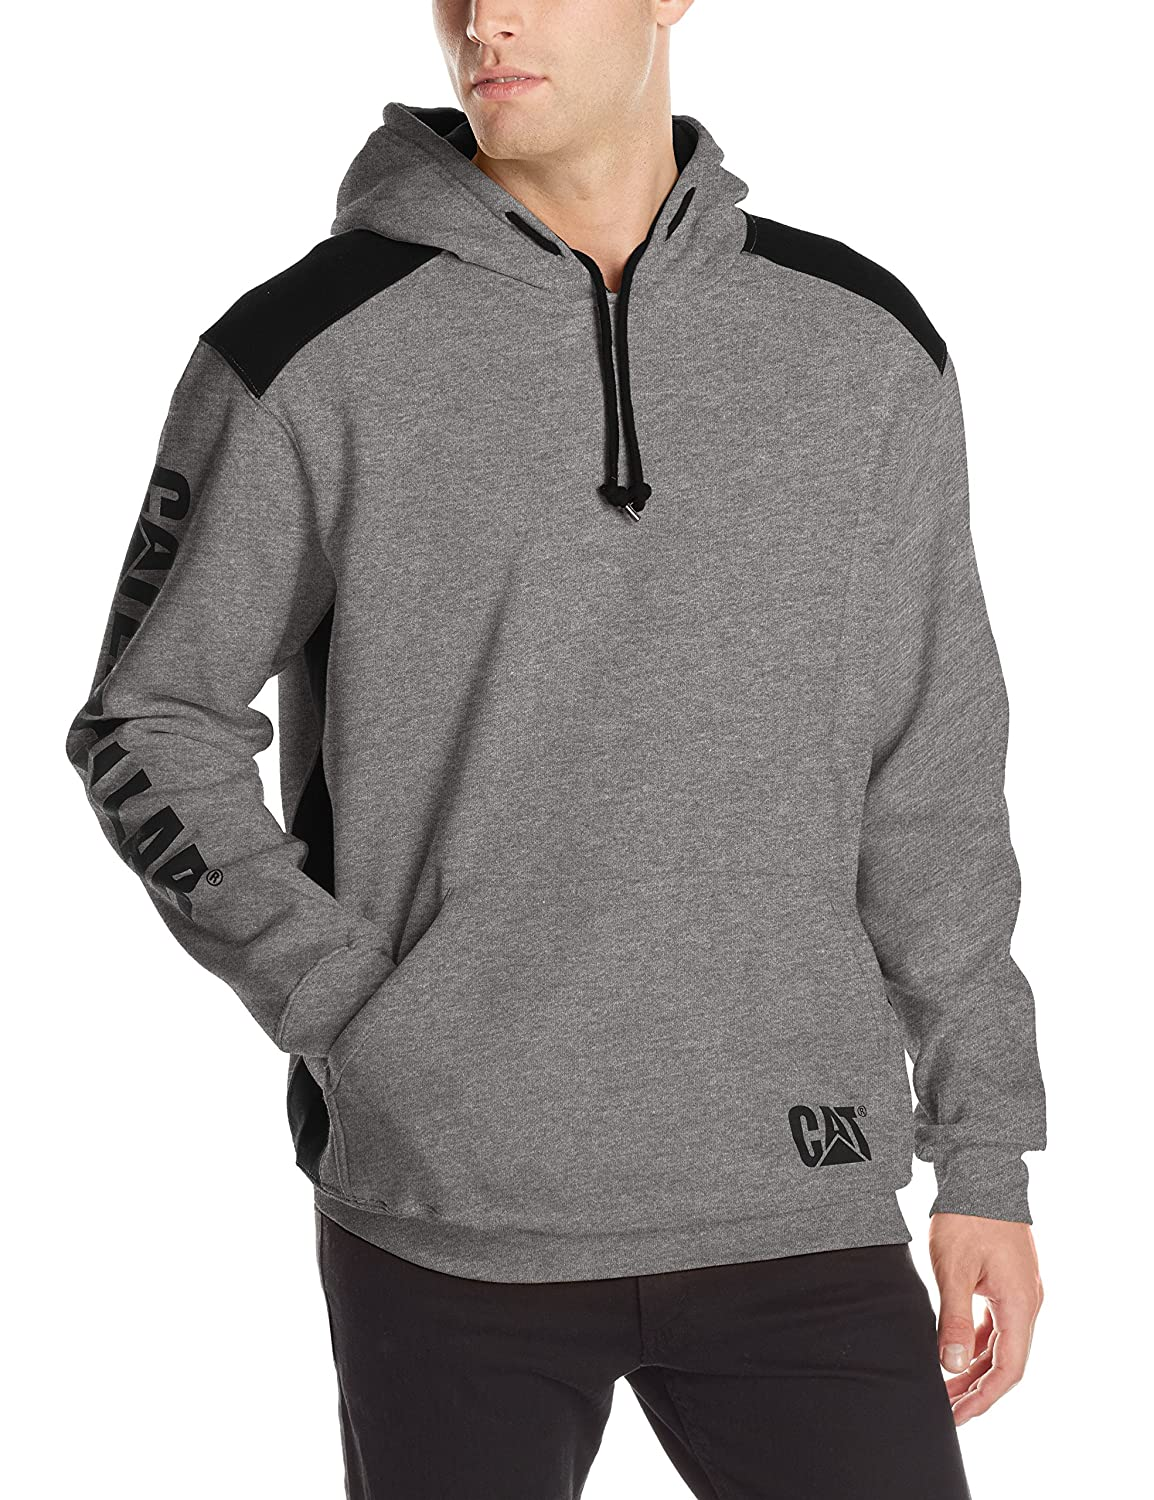 Caterpillar Men's Logo Panel Hooded Sweatshirt 1910802